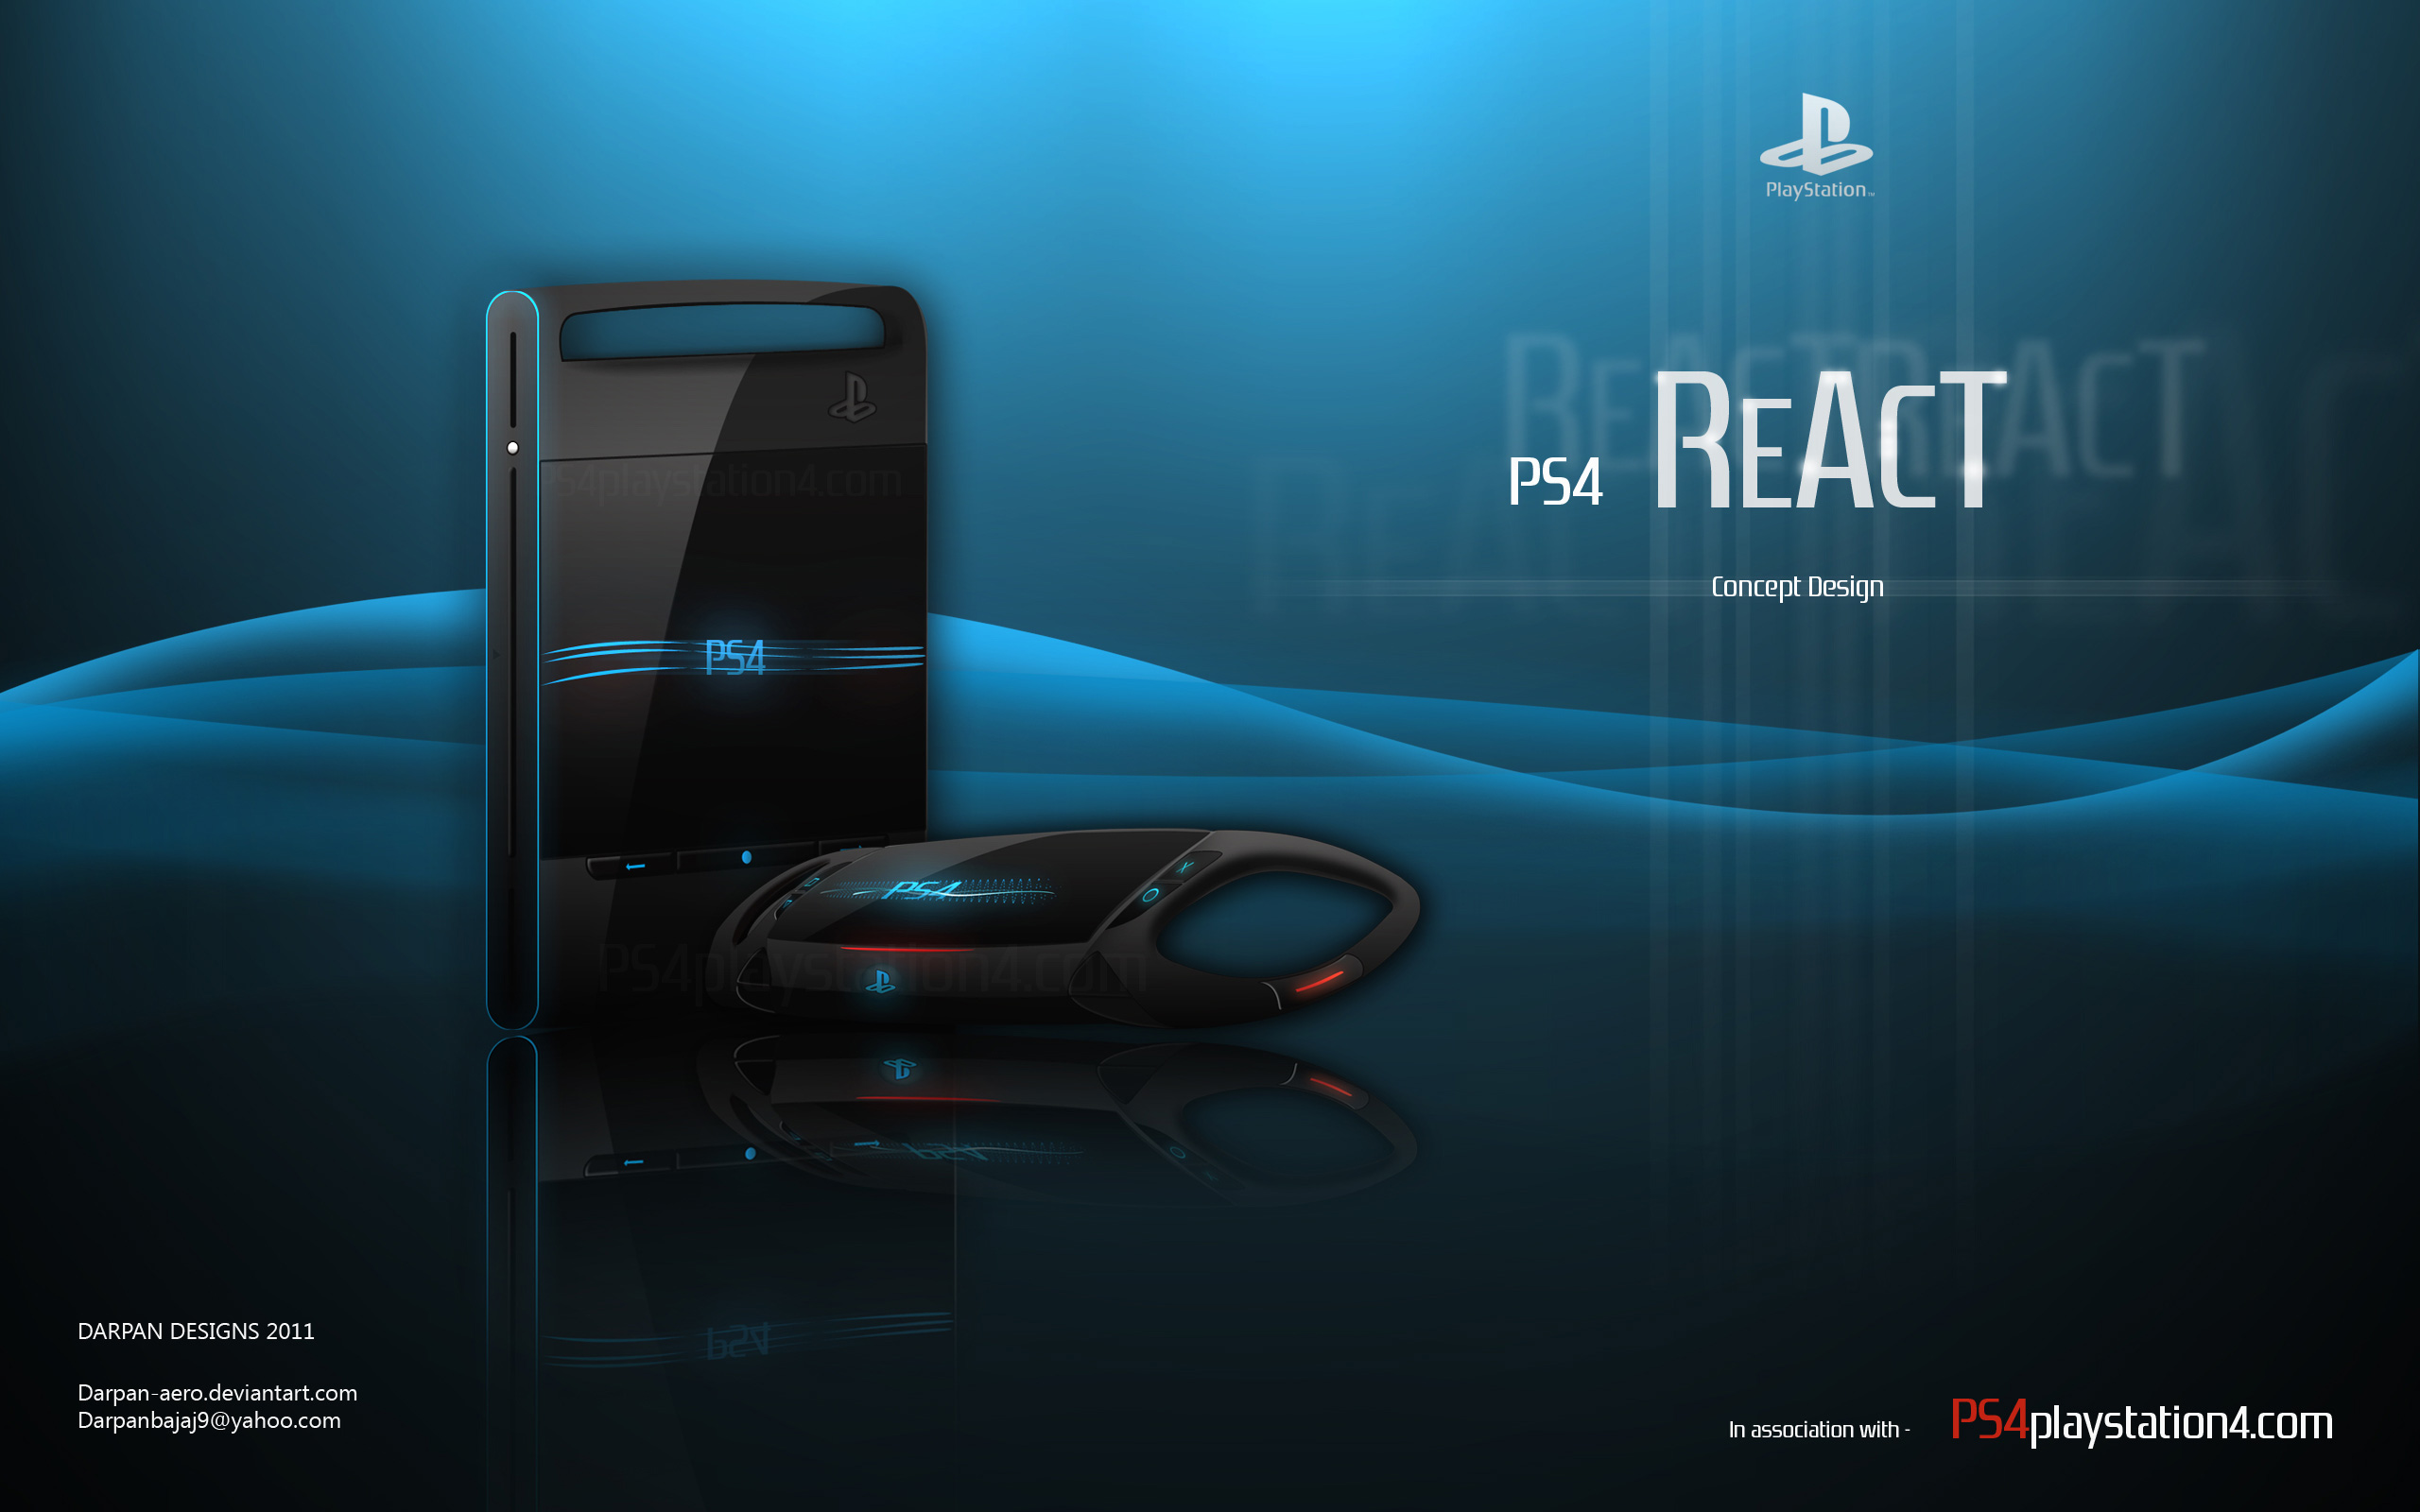 PS4 React Concept Design by Darpan